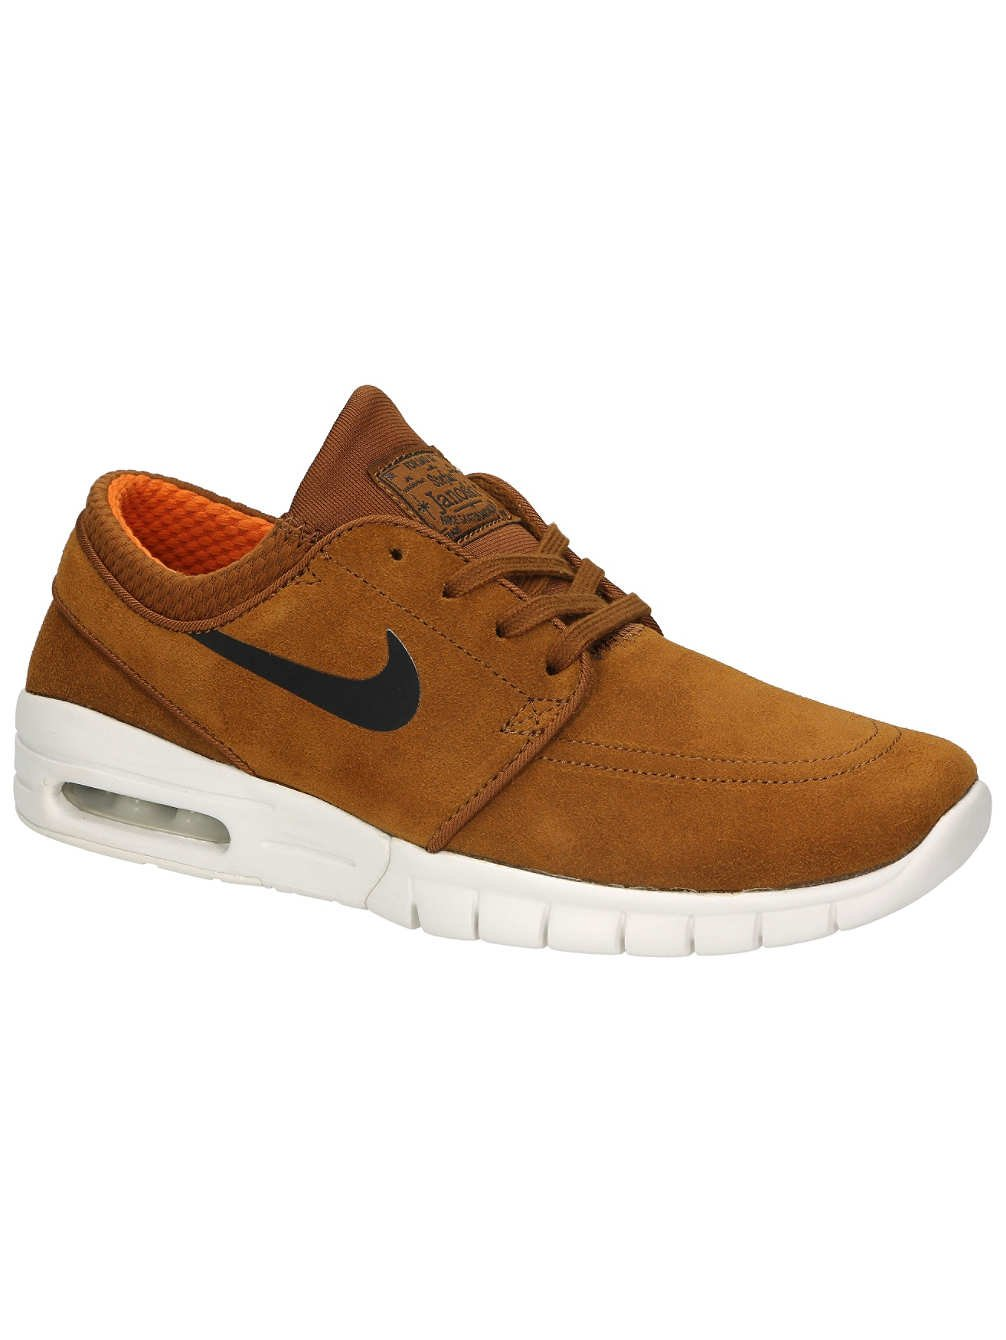 size 40 e8e01 be6c6 Galleon - NIKE SB Stefan Janoski Max L Mens Trainers 685299 Sneakers Shoes  (US 7.5, Hazel Nut Black Ivory 201)